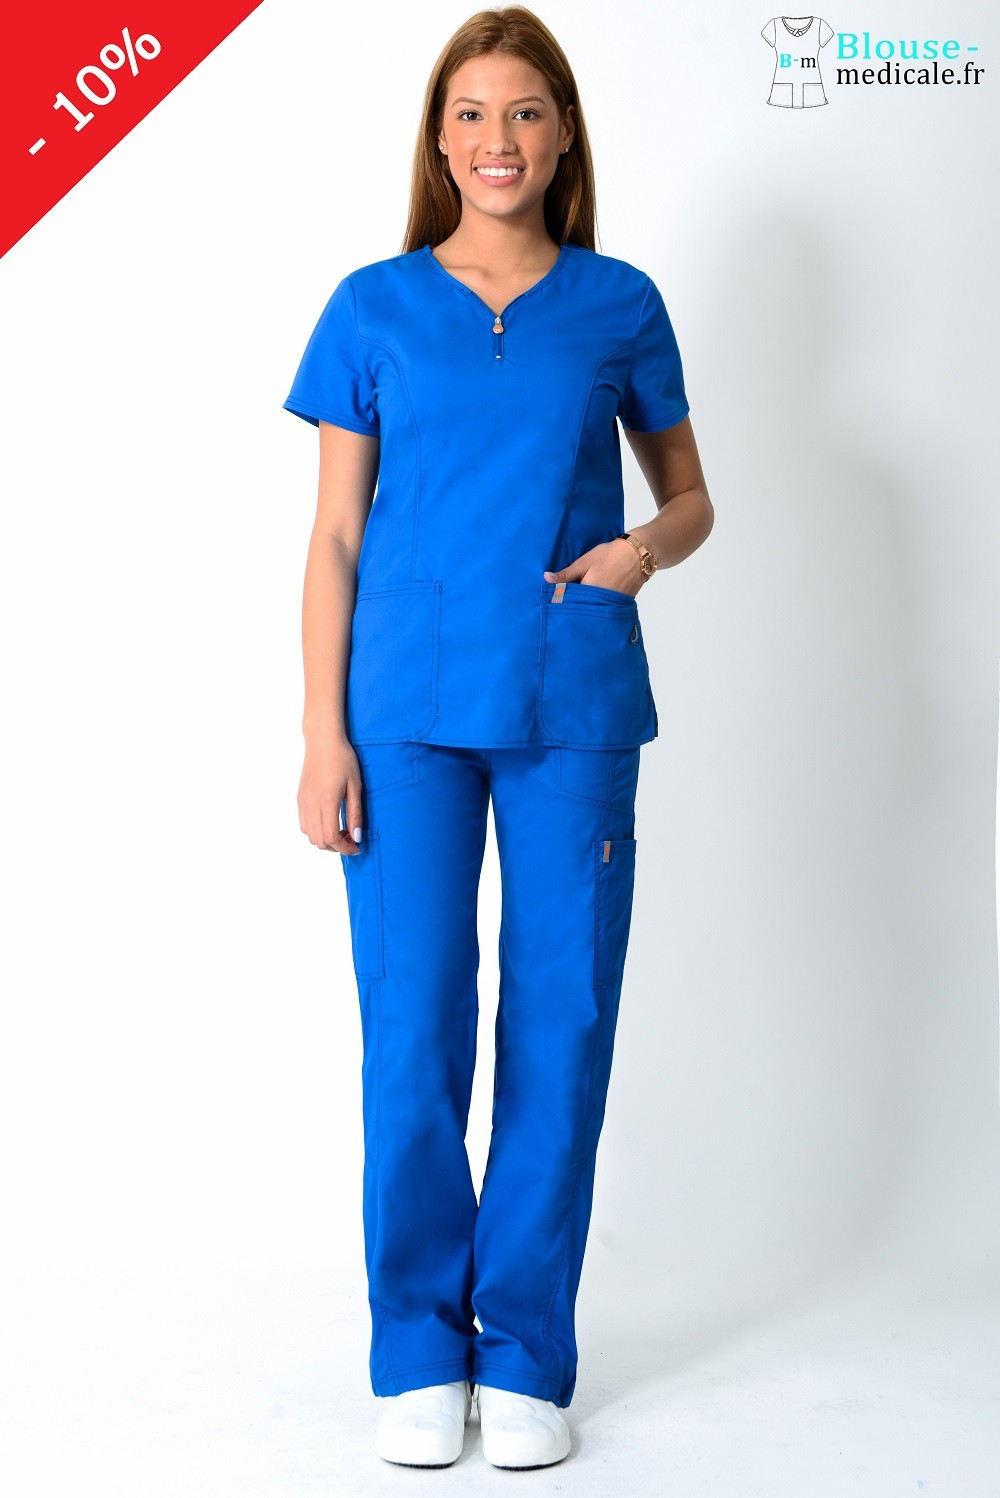 Medicale Medicale Tenue Blouse Medicale Infimière Tenue Blouse Infimière Blouse Infimière Blouse Tenue qXfrdwXn